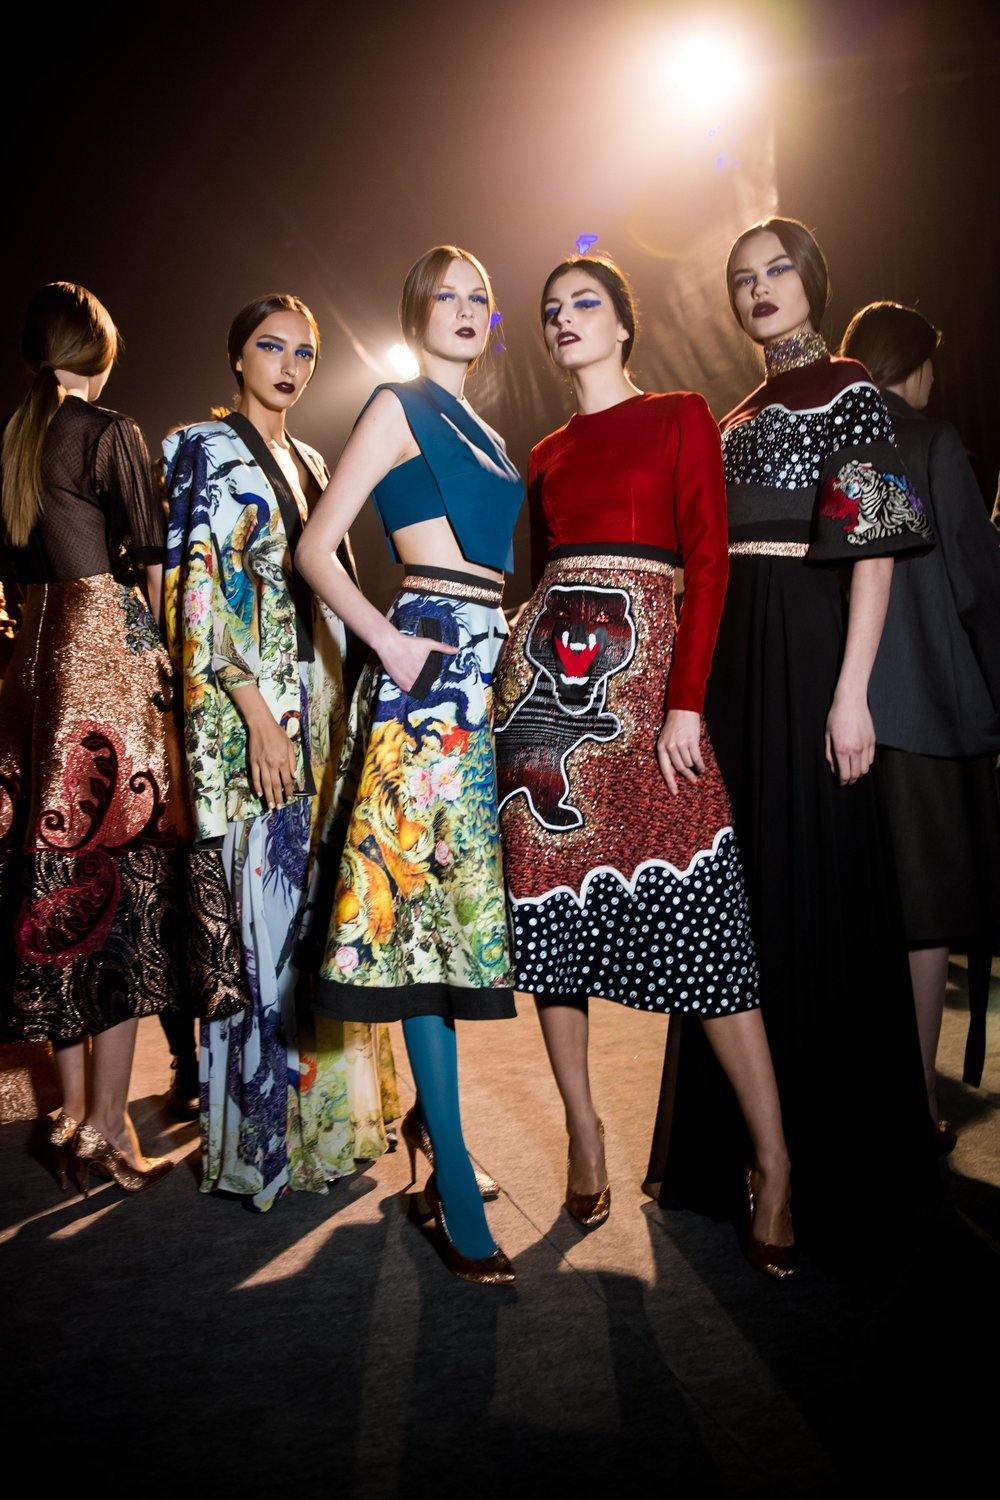 Hussein Bazaza mesmerizes the crowd with bold colors and wild prints